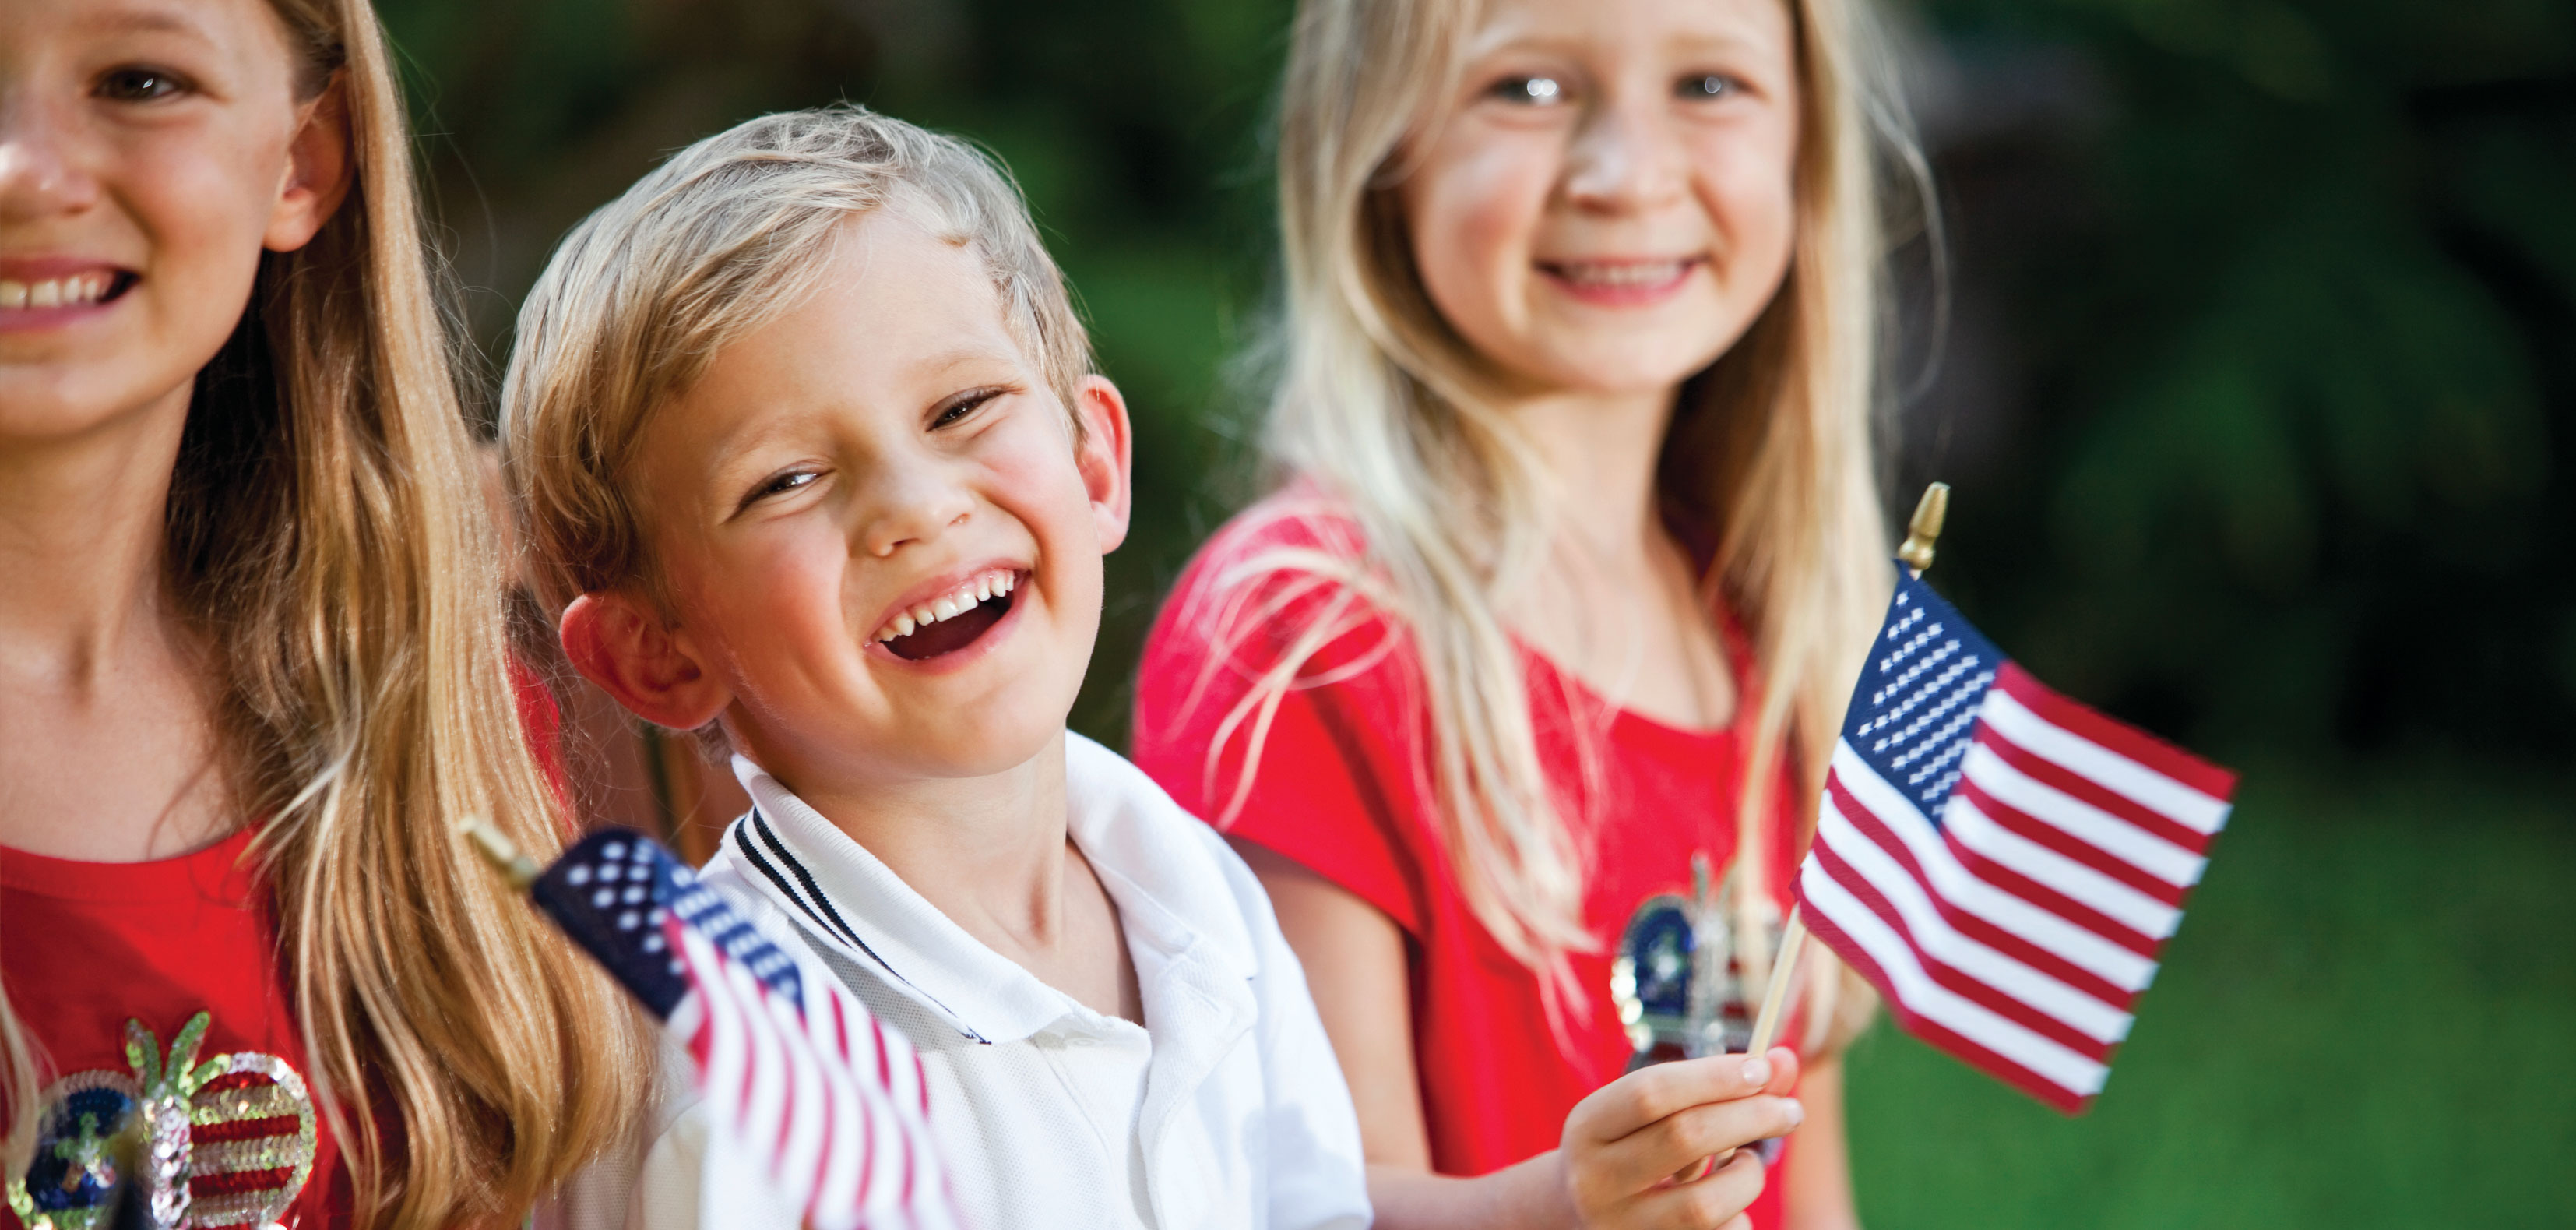 Enjoy a small town 4th of July parade.